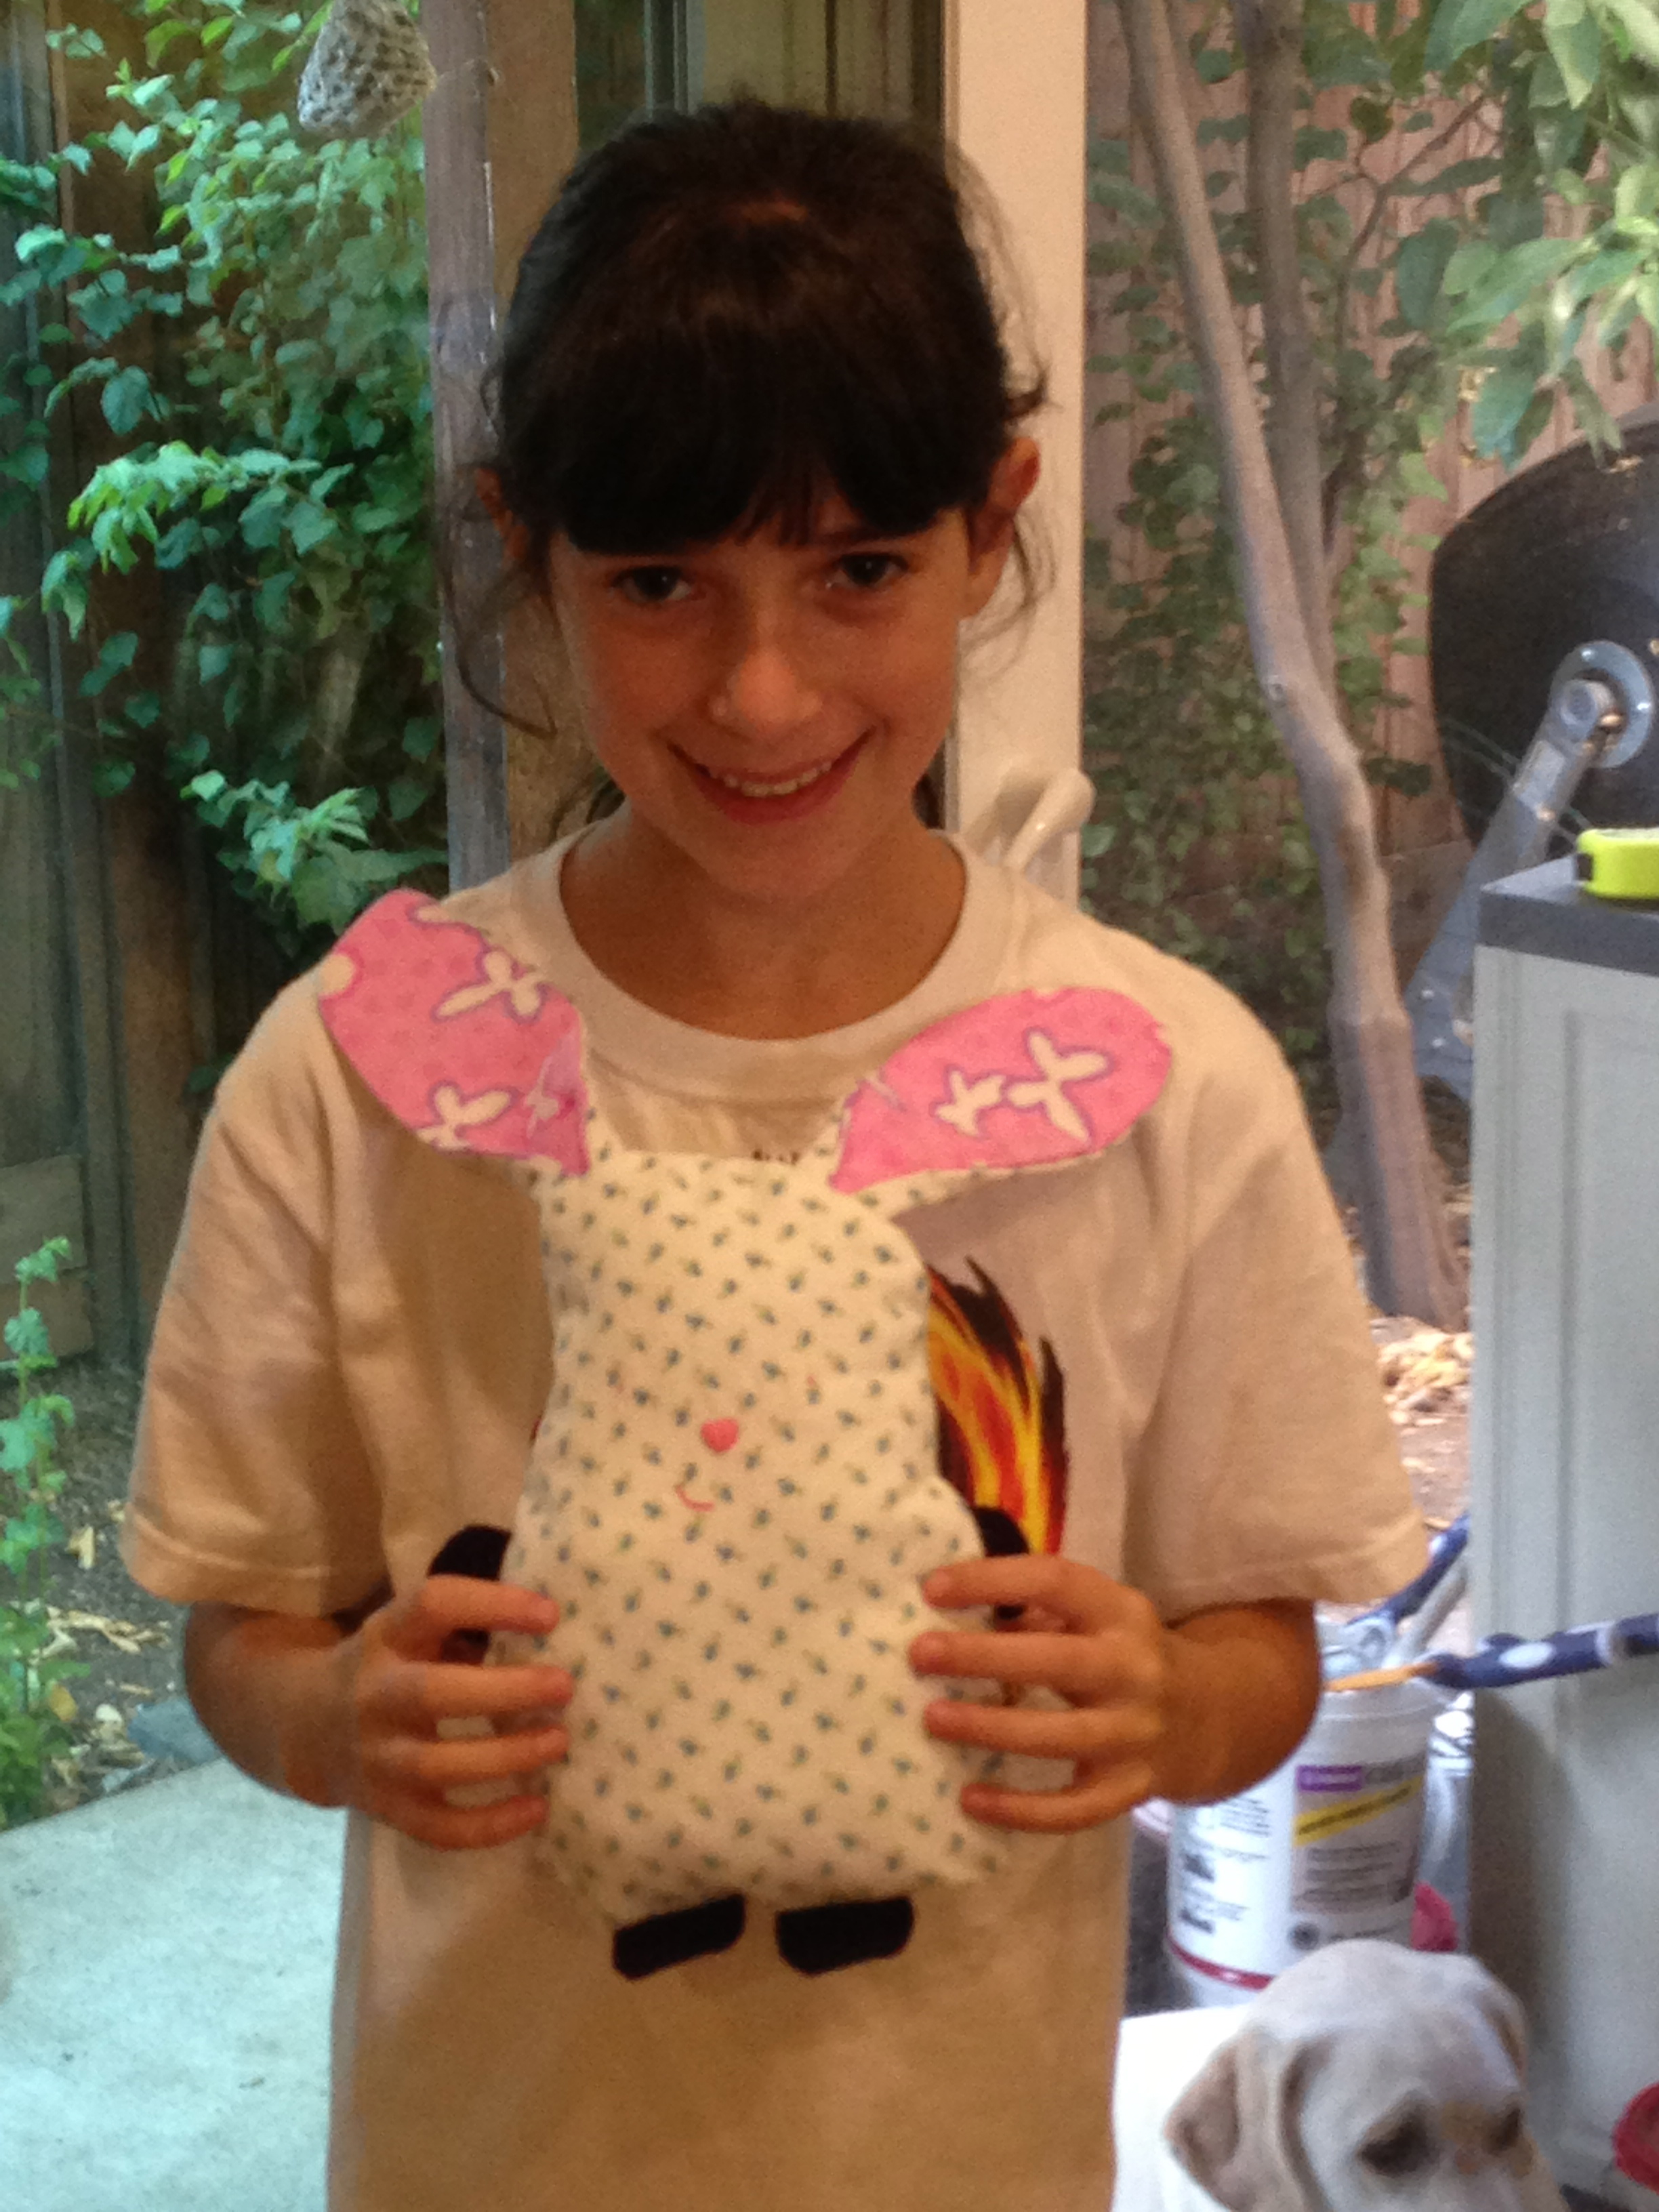 5th grader finished stuffed bunny.